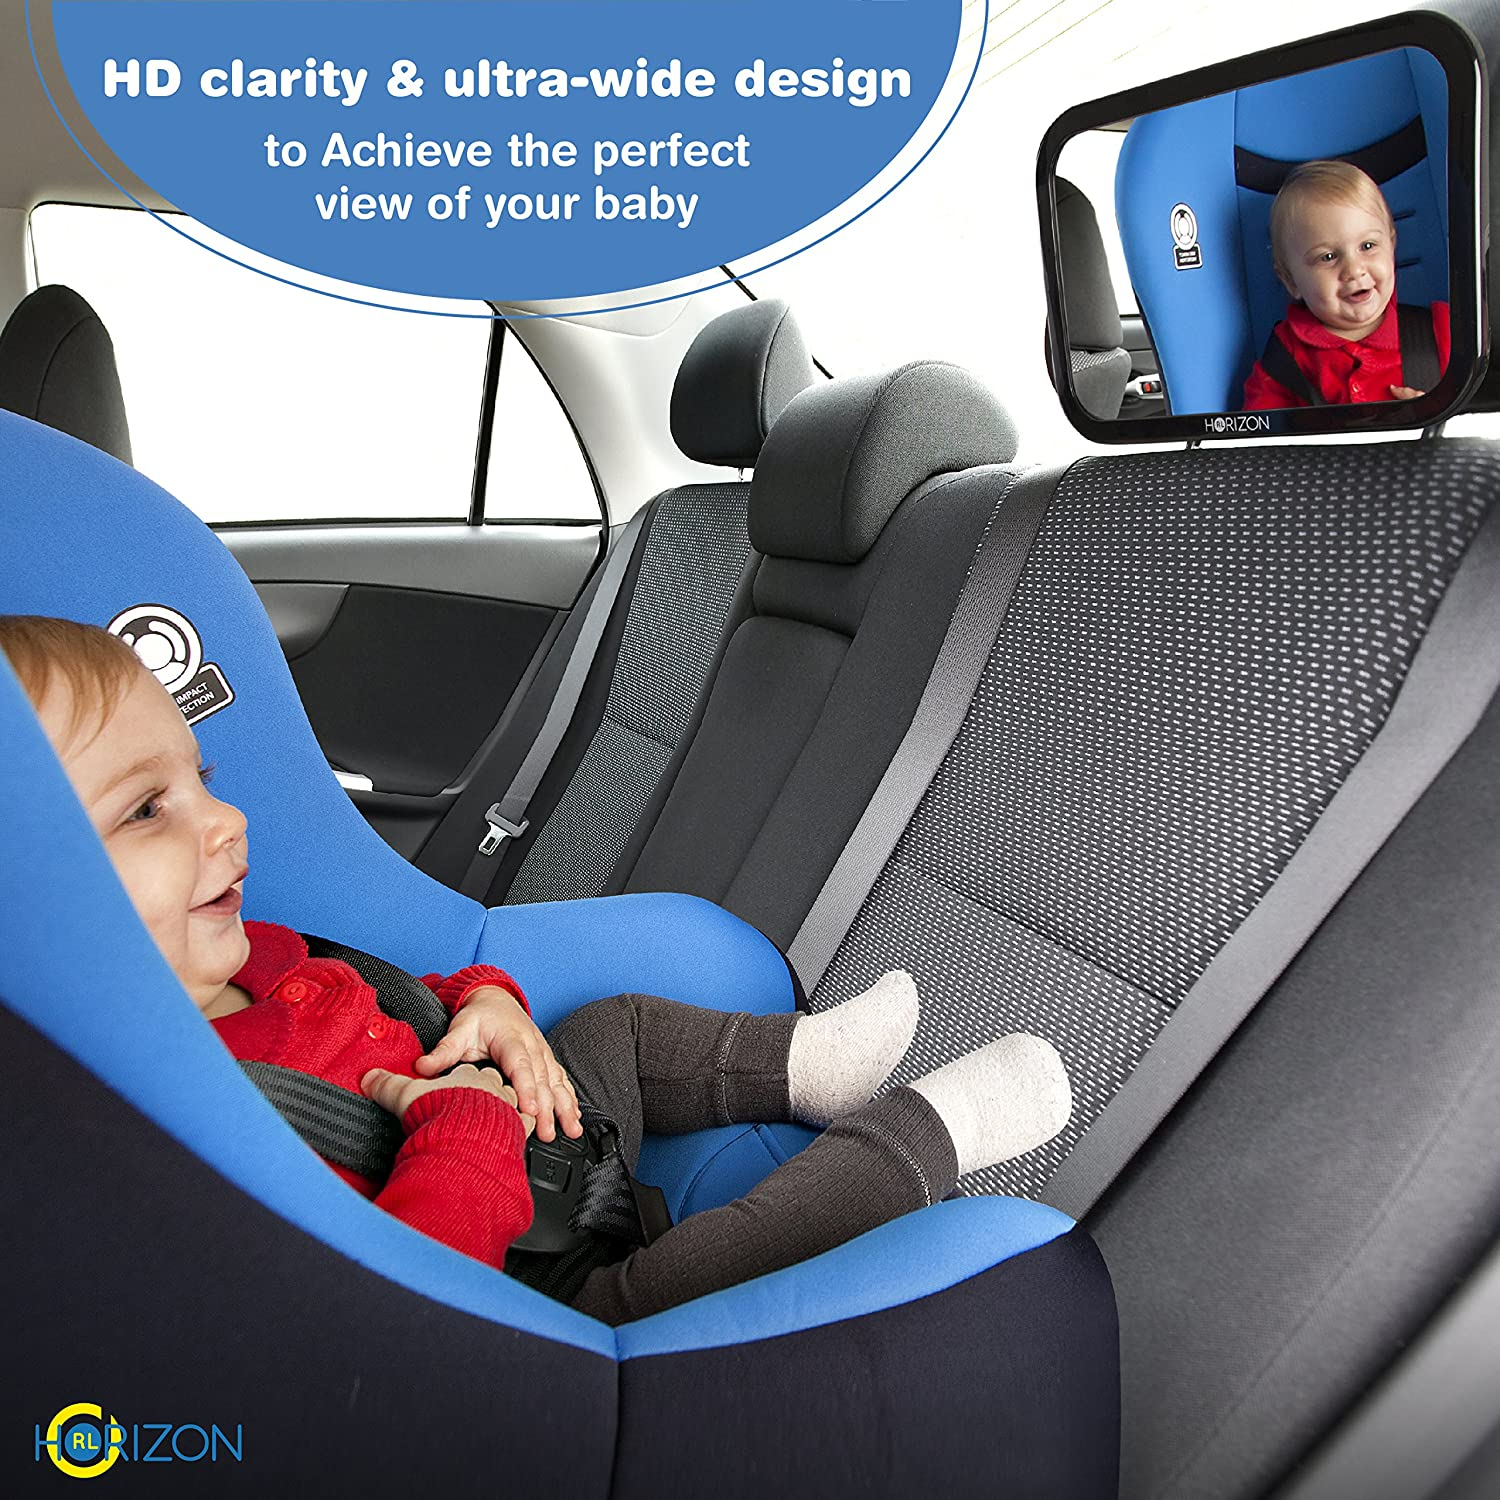 Premium Infant Carseat Mirror Baby On Board Sign View Backseat Without Risk Headrest